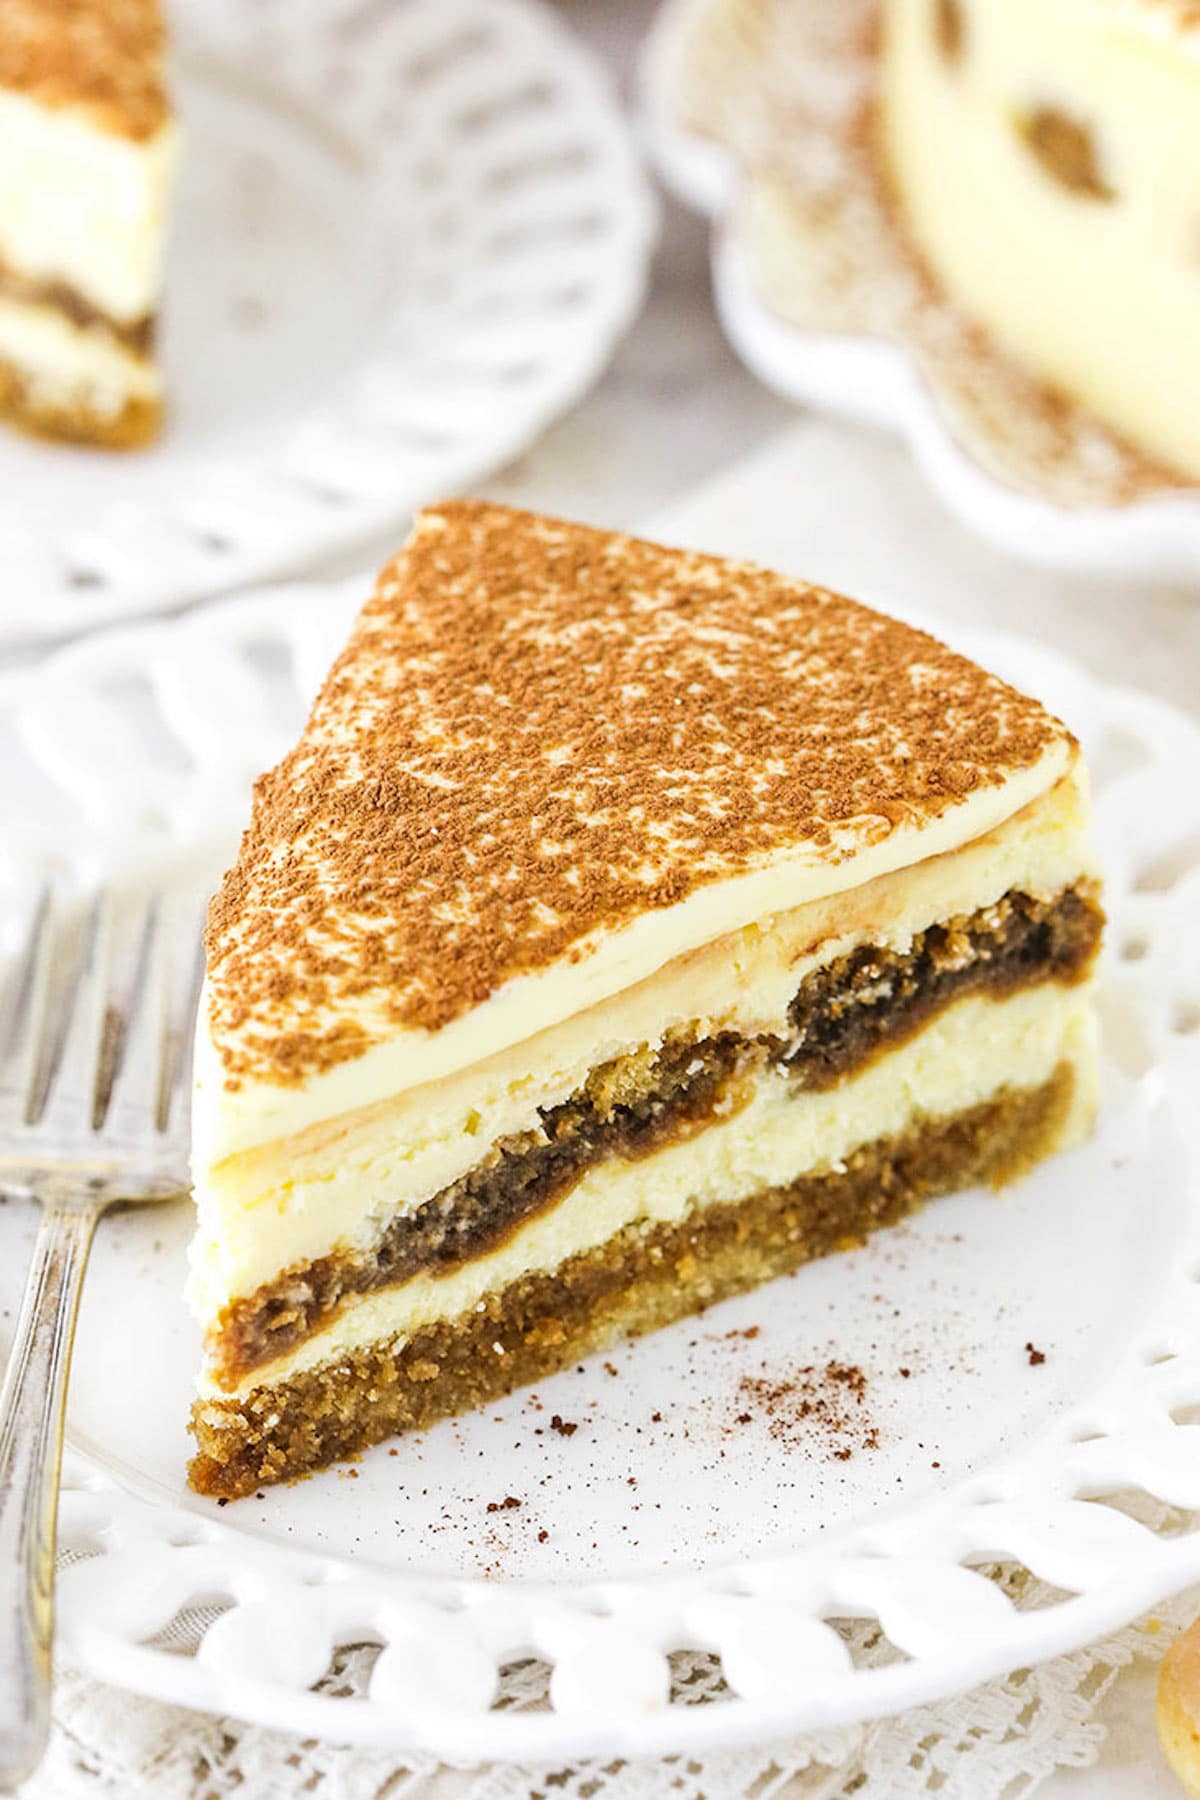 A Piece of the Ultimate Tiramisu Cheesecake on a White Plate with Decorative Edges